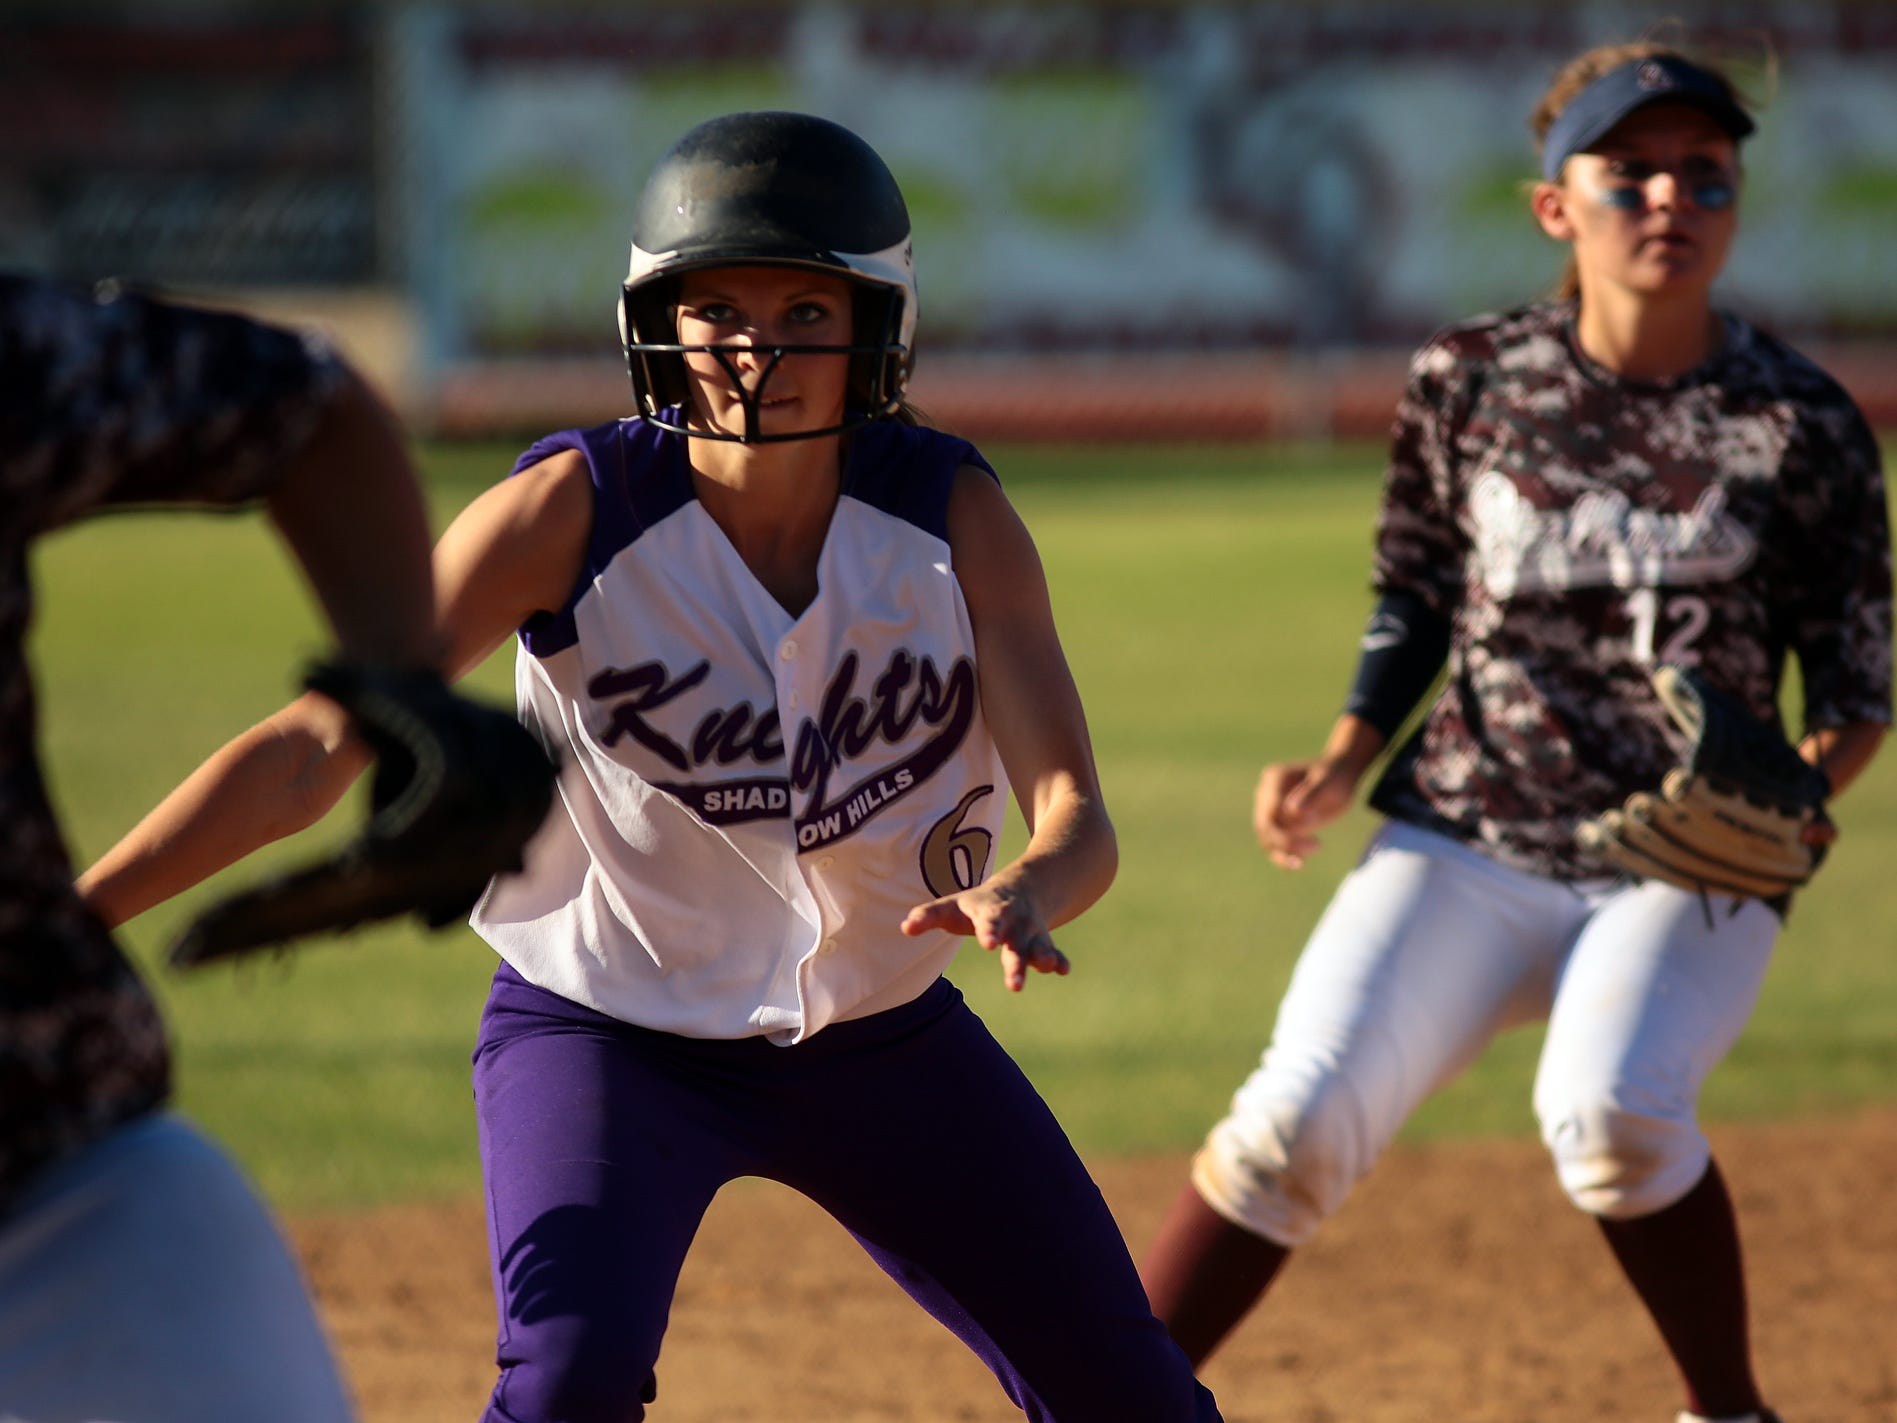 Brittany Dean of Shadow Hills (6) is caught in a pickle between second and third base Thursday afternoon during a game at La Quinta High School. Shadow Hills Knights played a double header against the Blackhawks, with La Quinta winning both games 7-5 and 4-1.